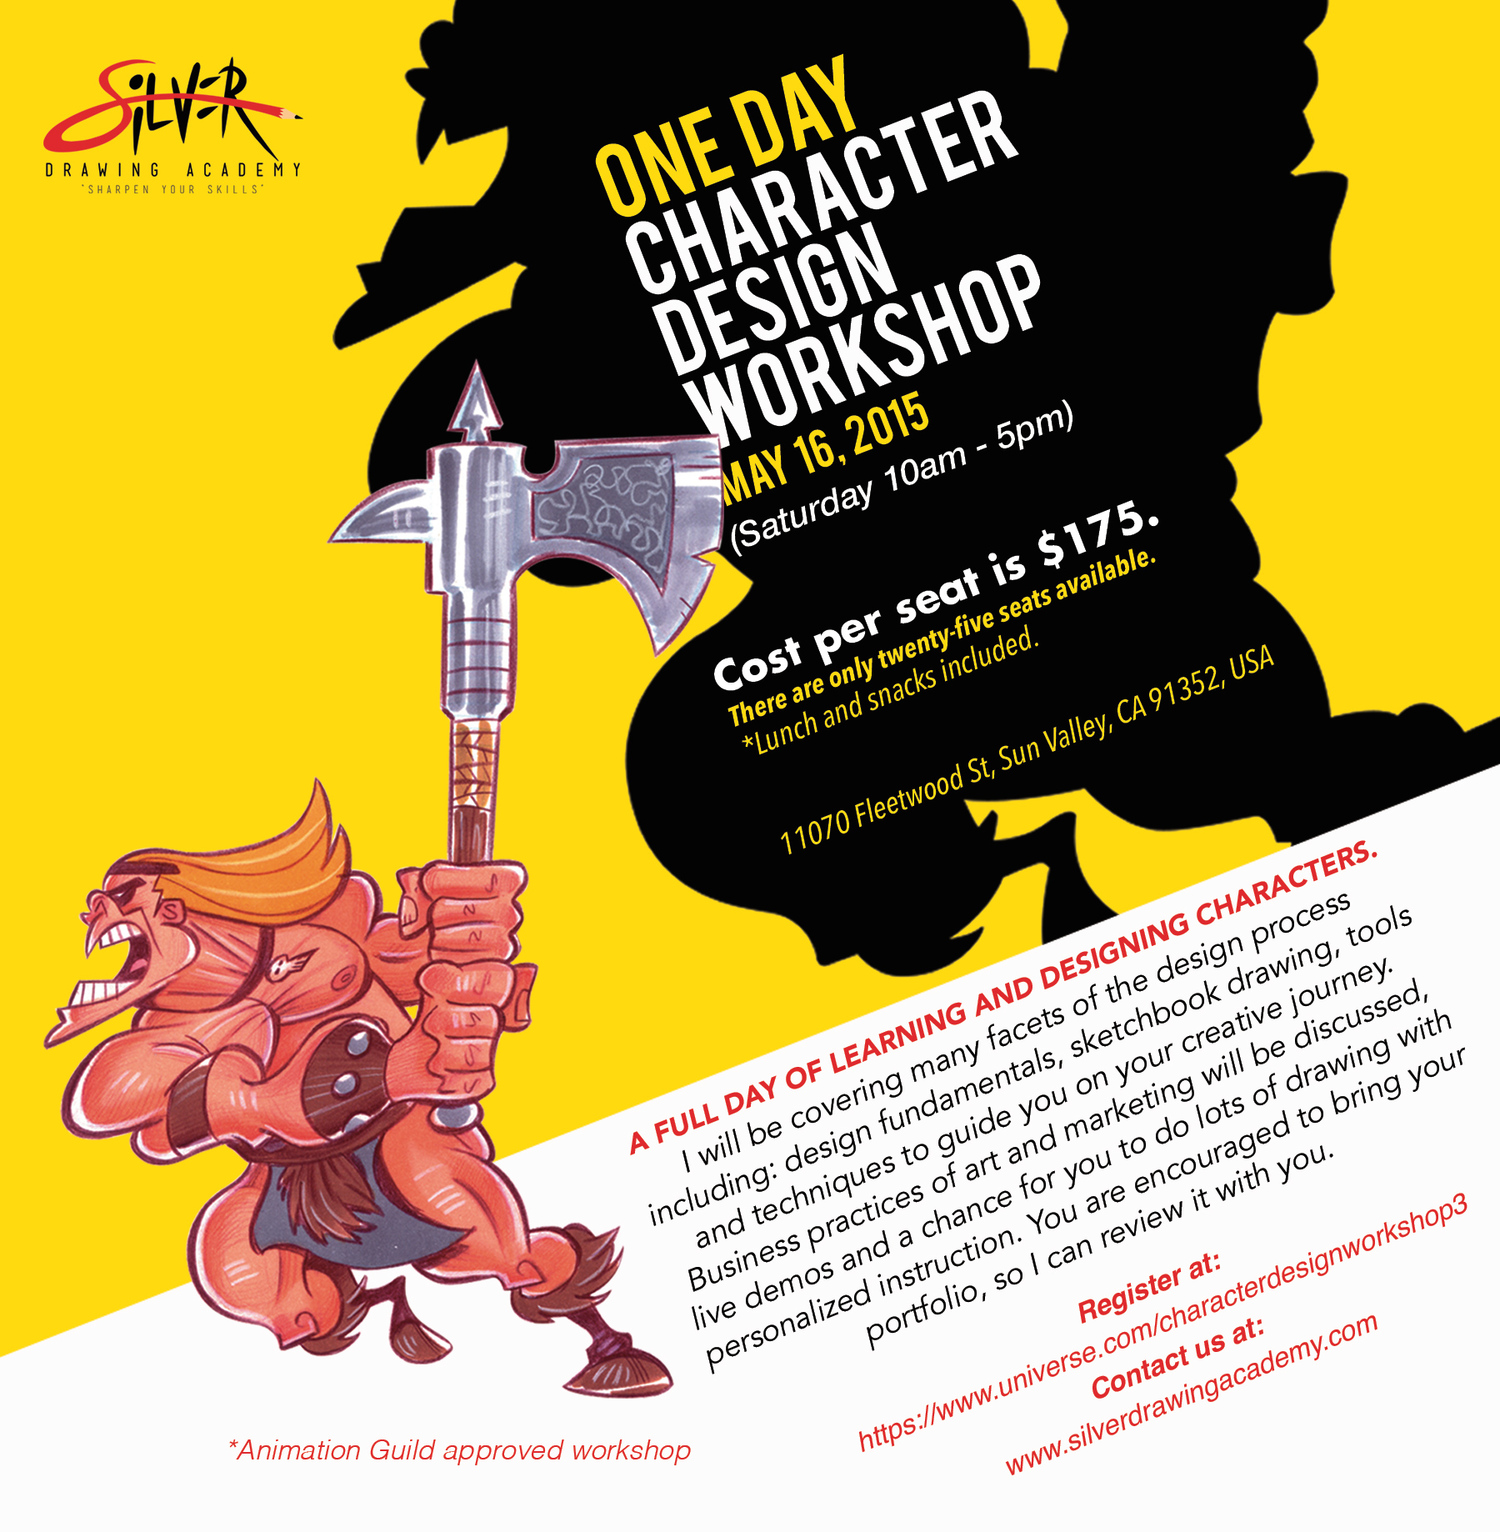 9402cb77e9 One Day Intensive Character Design Workshop May 16th 2015 — Stephen Silver